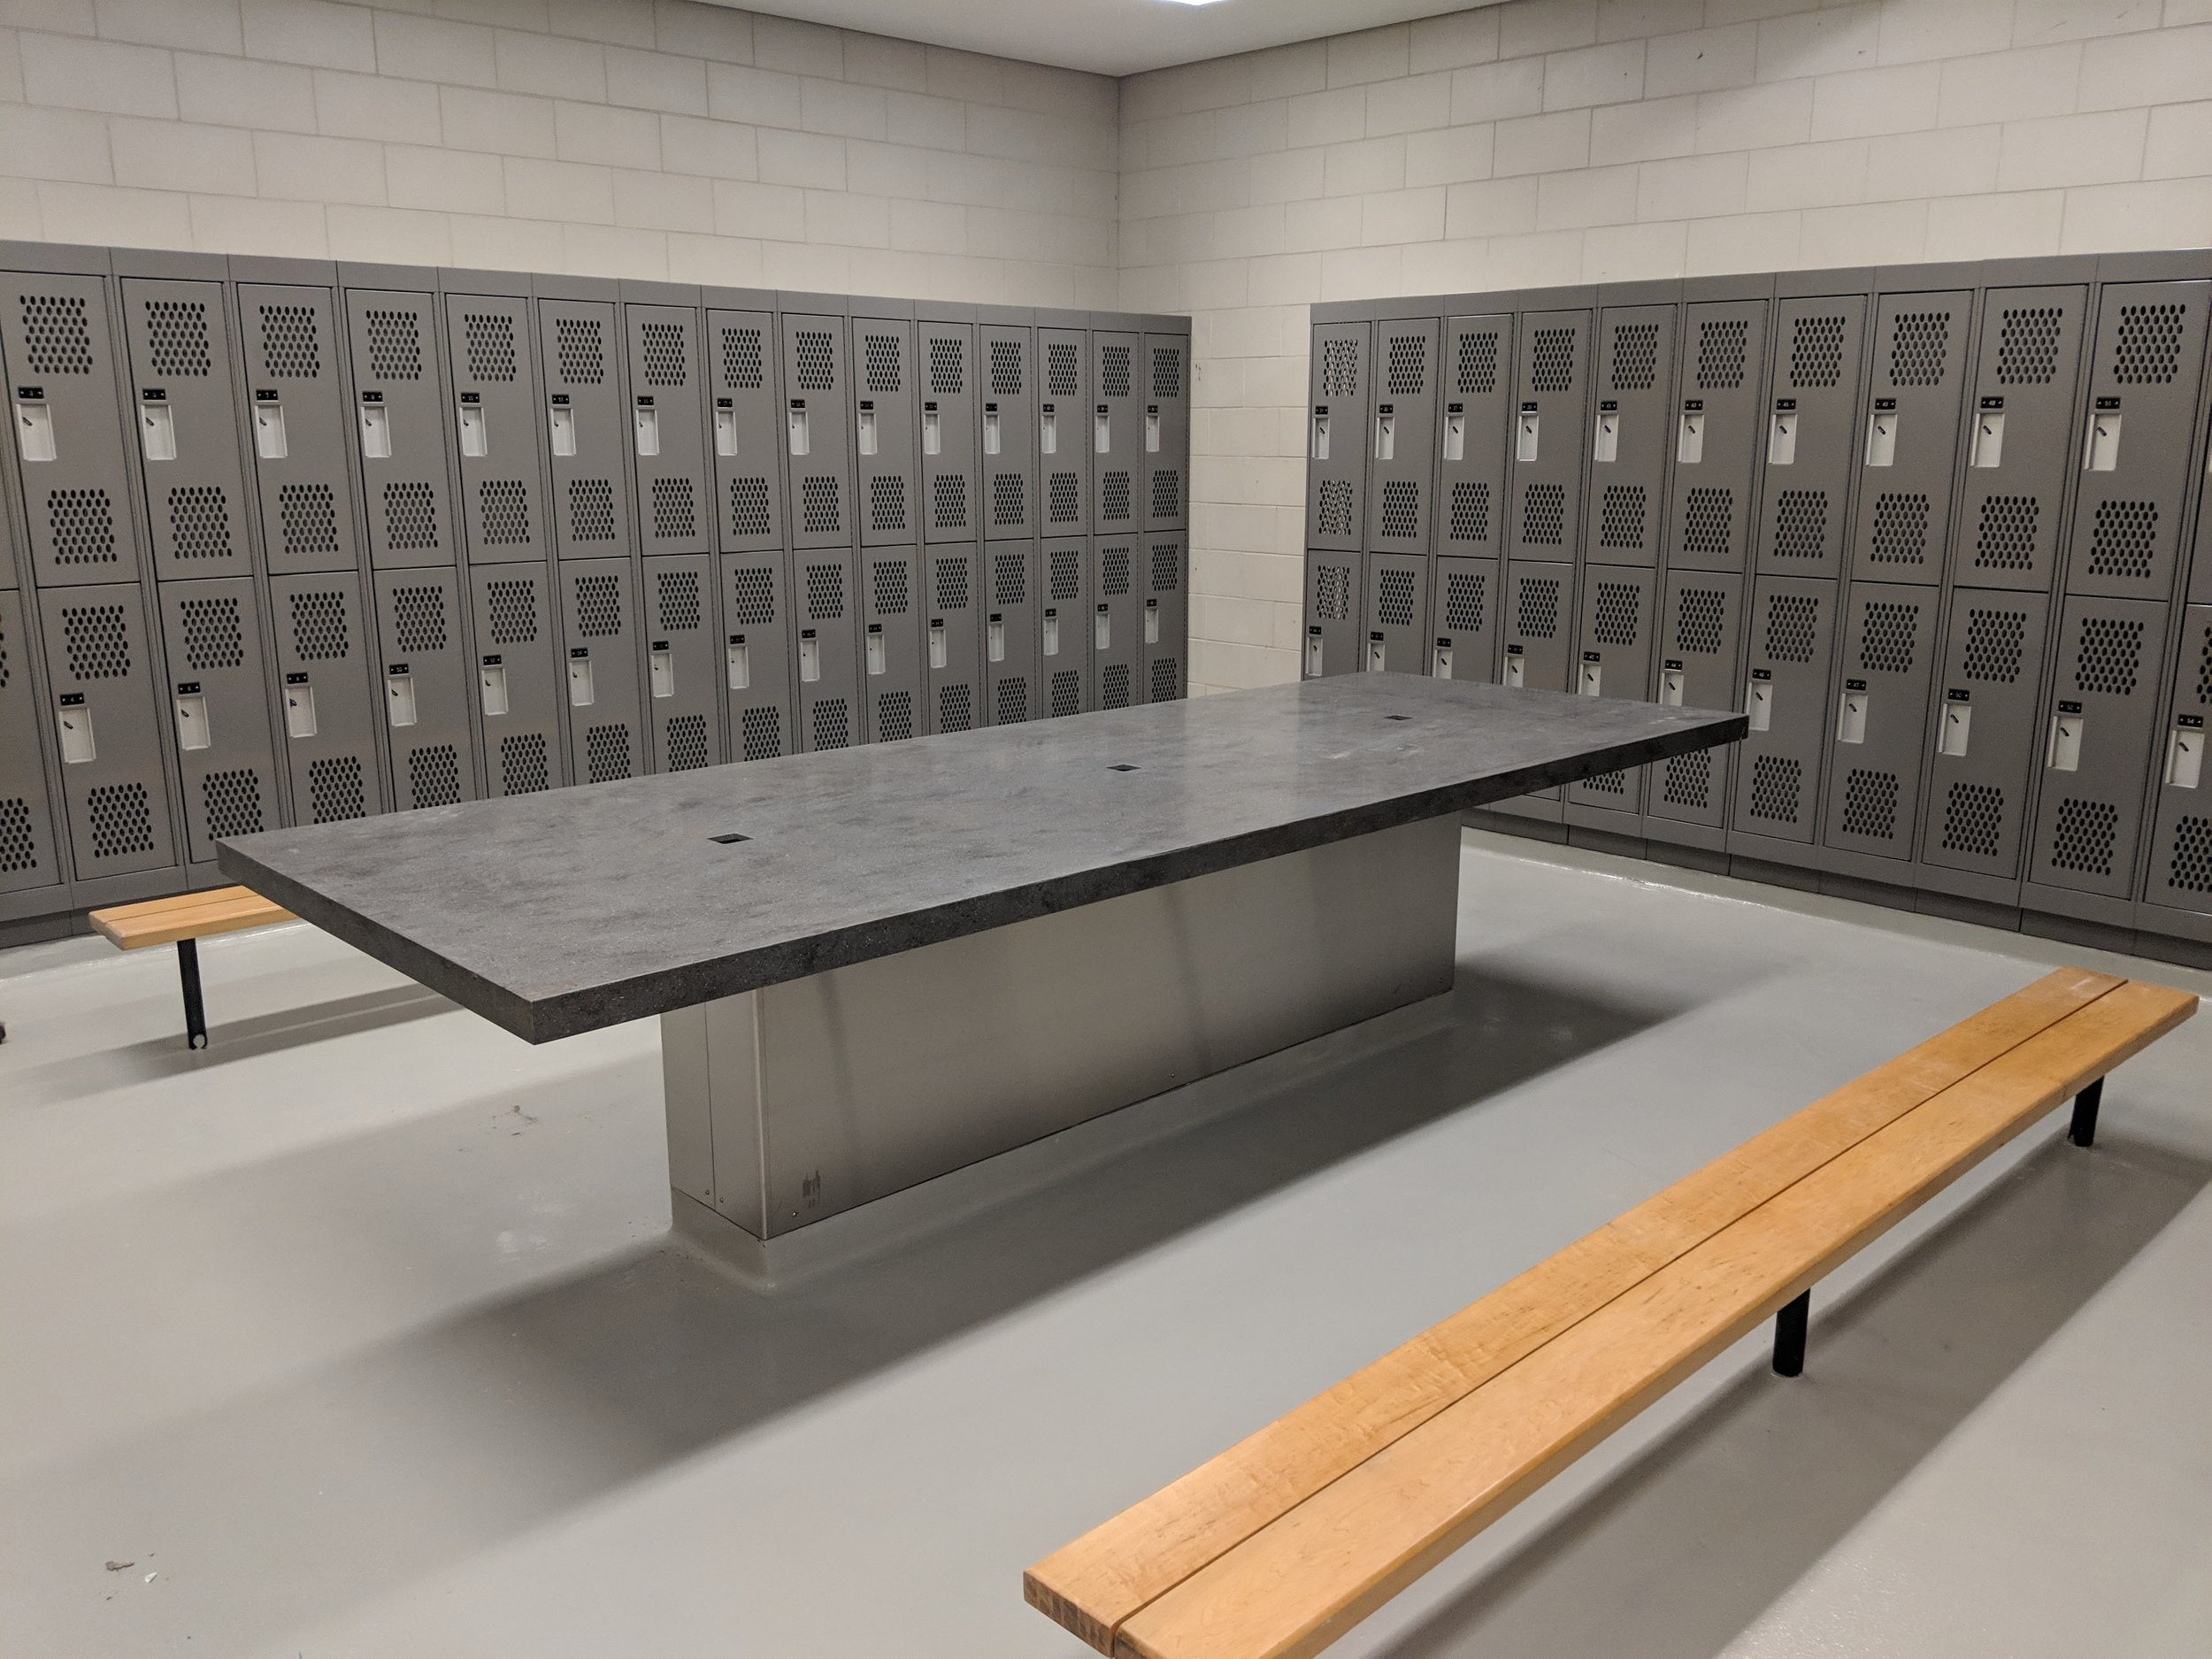 Epoxy flooring supersedes tiles and out performs in every aspect. Durability and ease of clean make it a must have in locker and change rooms.